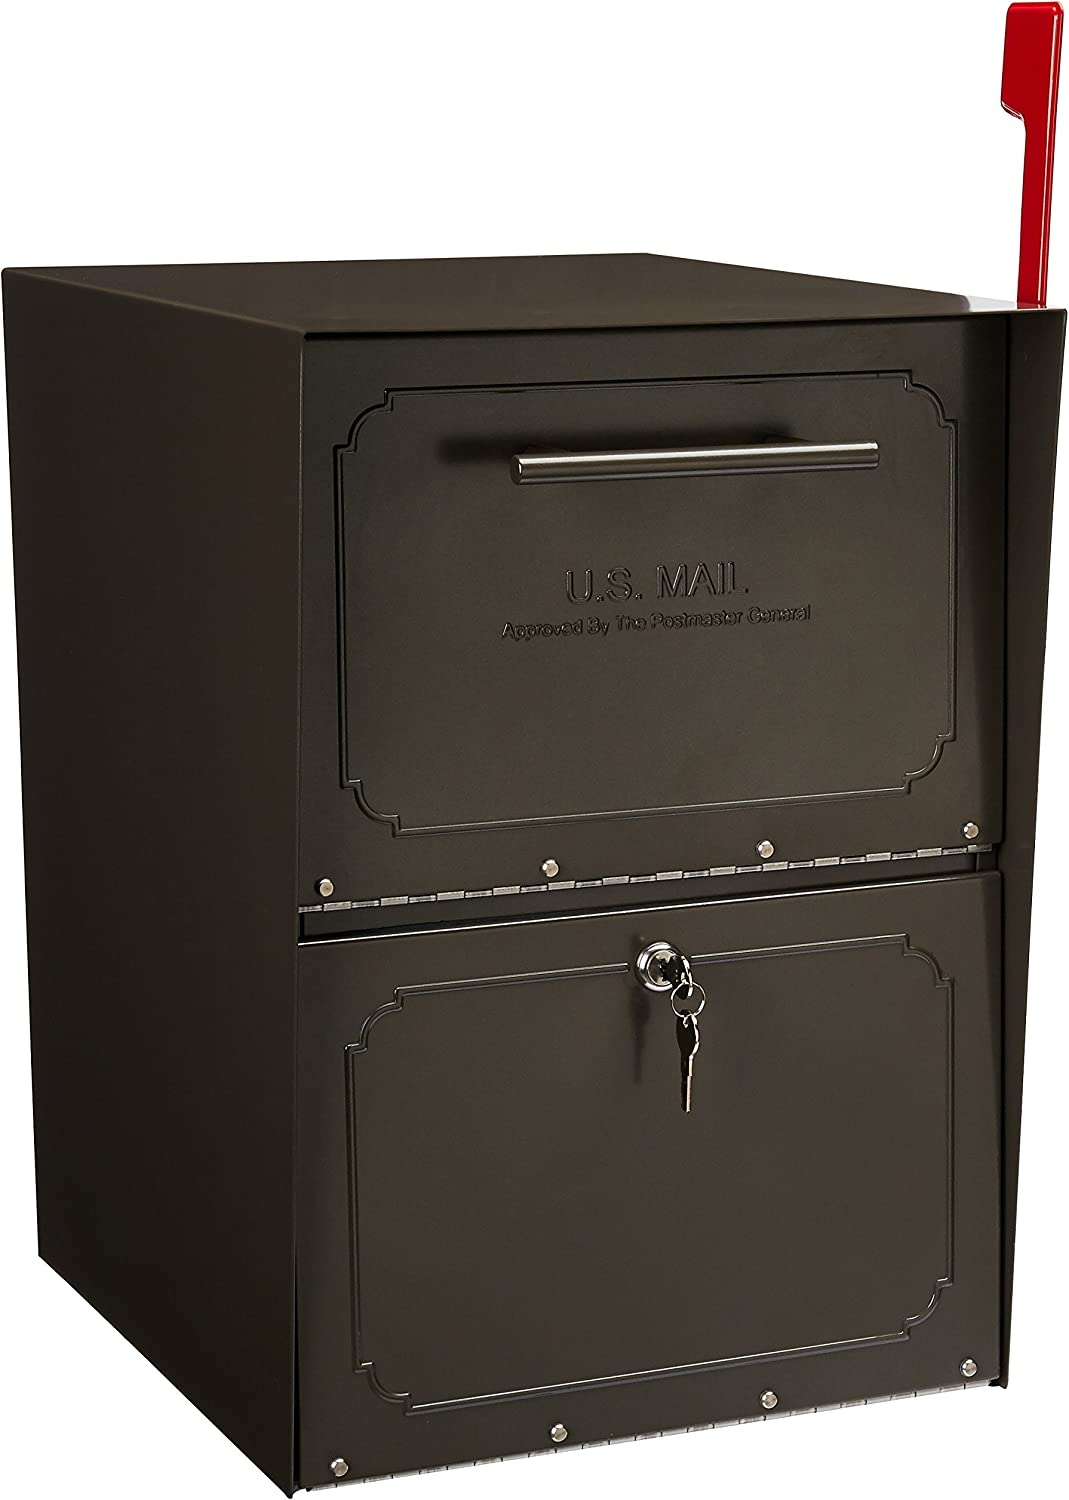 Architectural Max 43% OFF Mailboxes Oasis Bronze Mailbox Free Shipping New Graphite